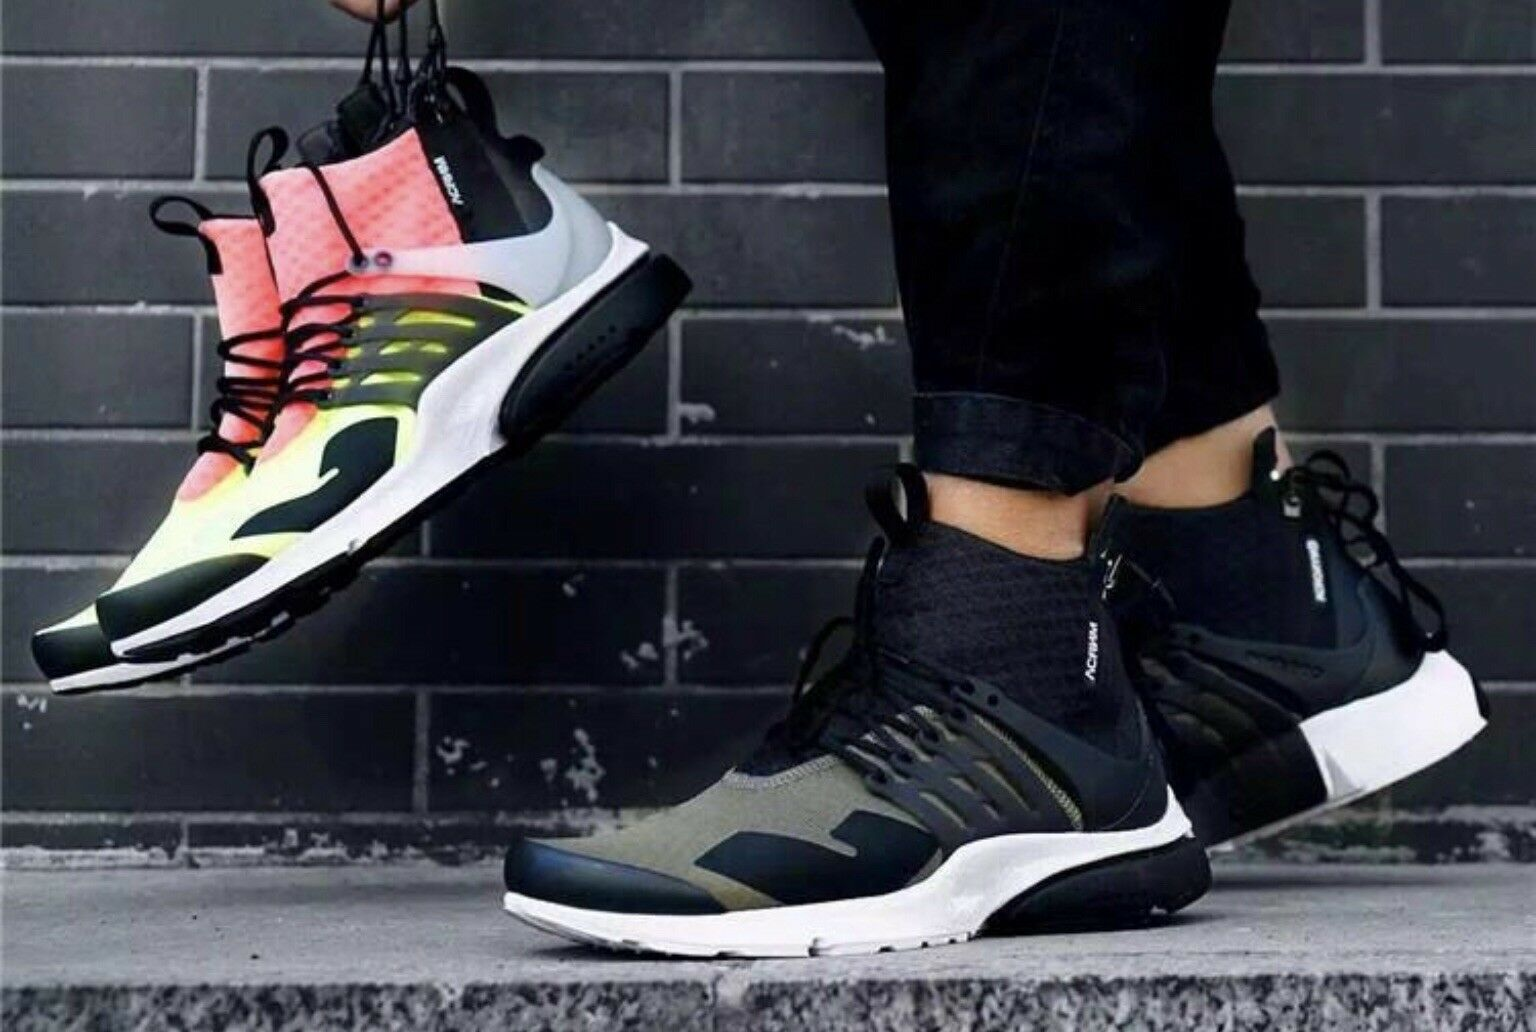 Nike Air Presto Mid Utility X Acronym Dynamic Bundle All Size 7